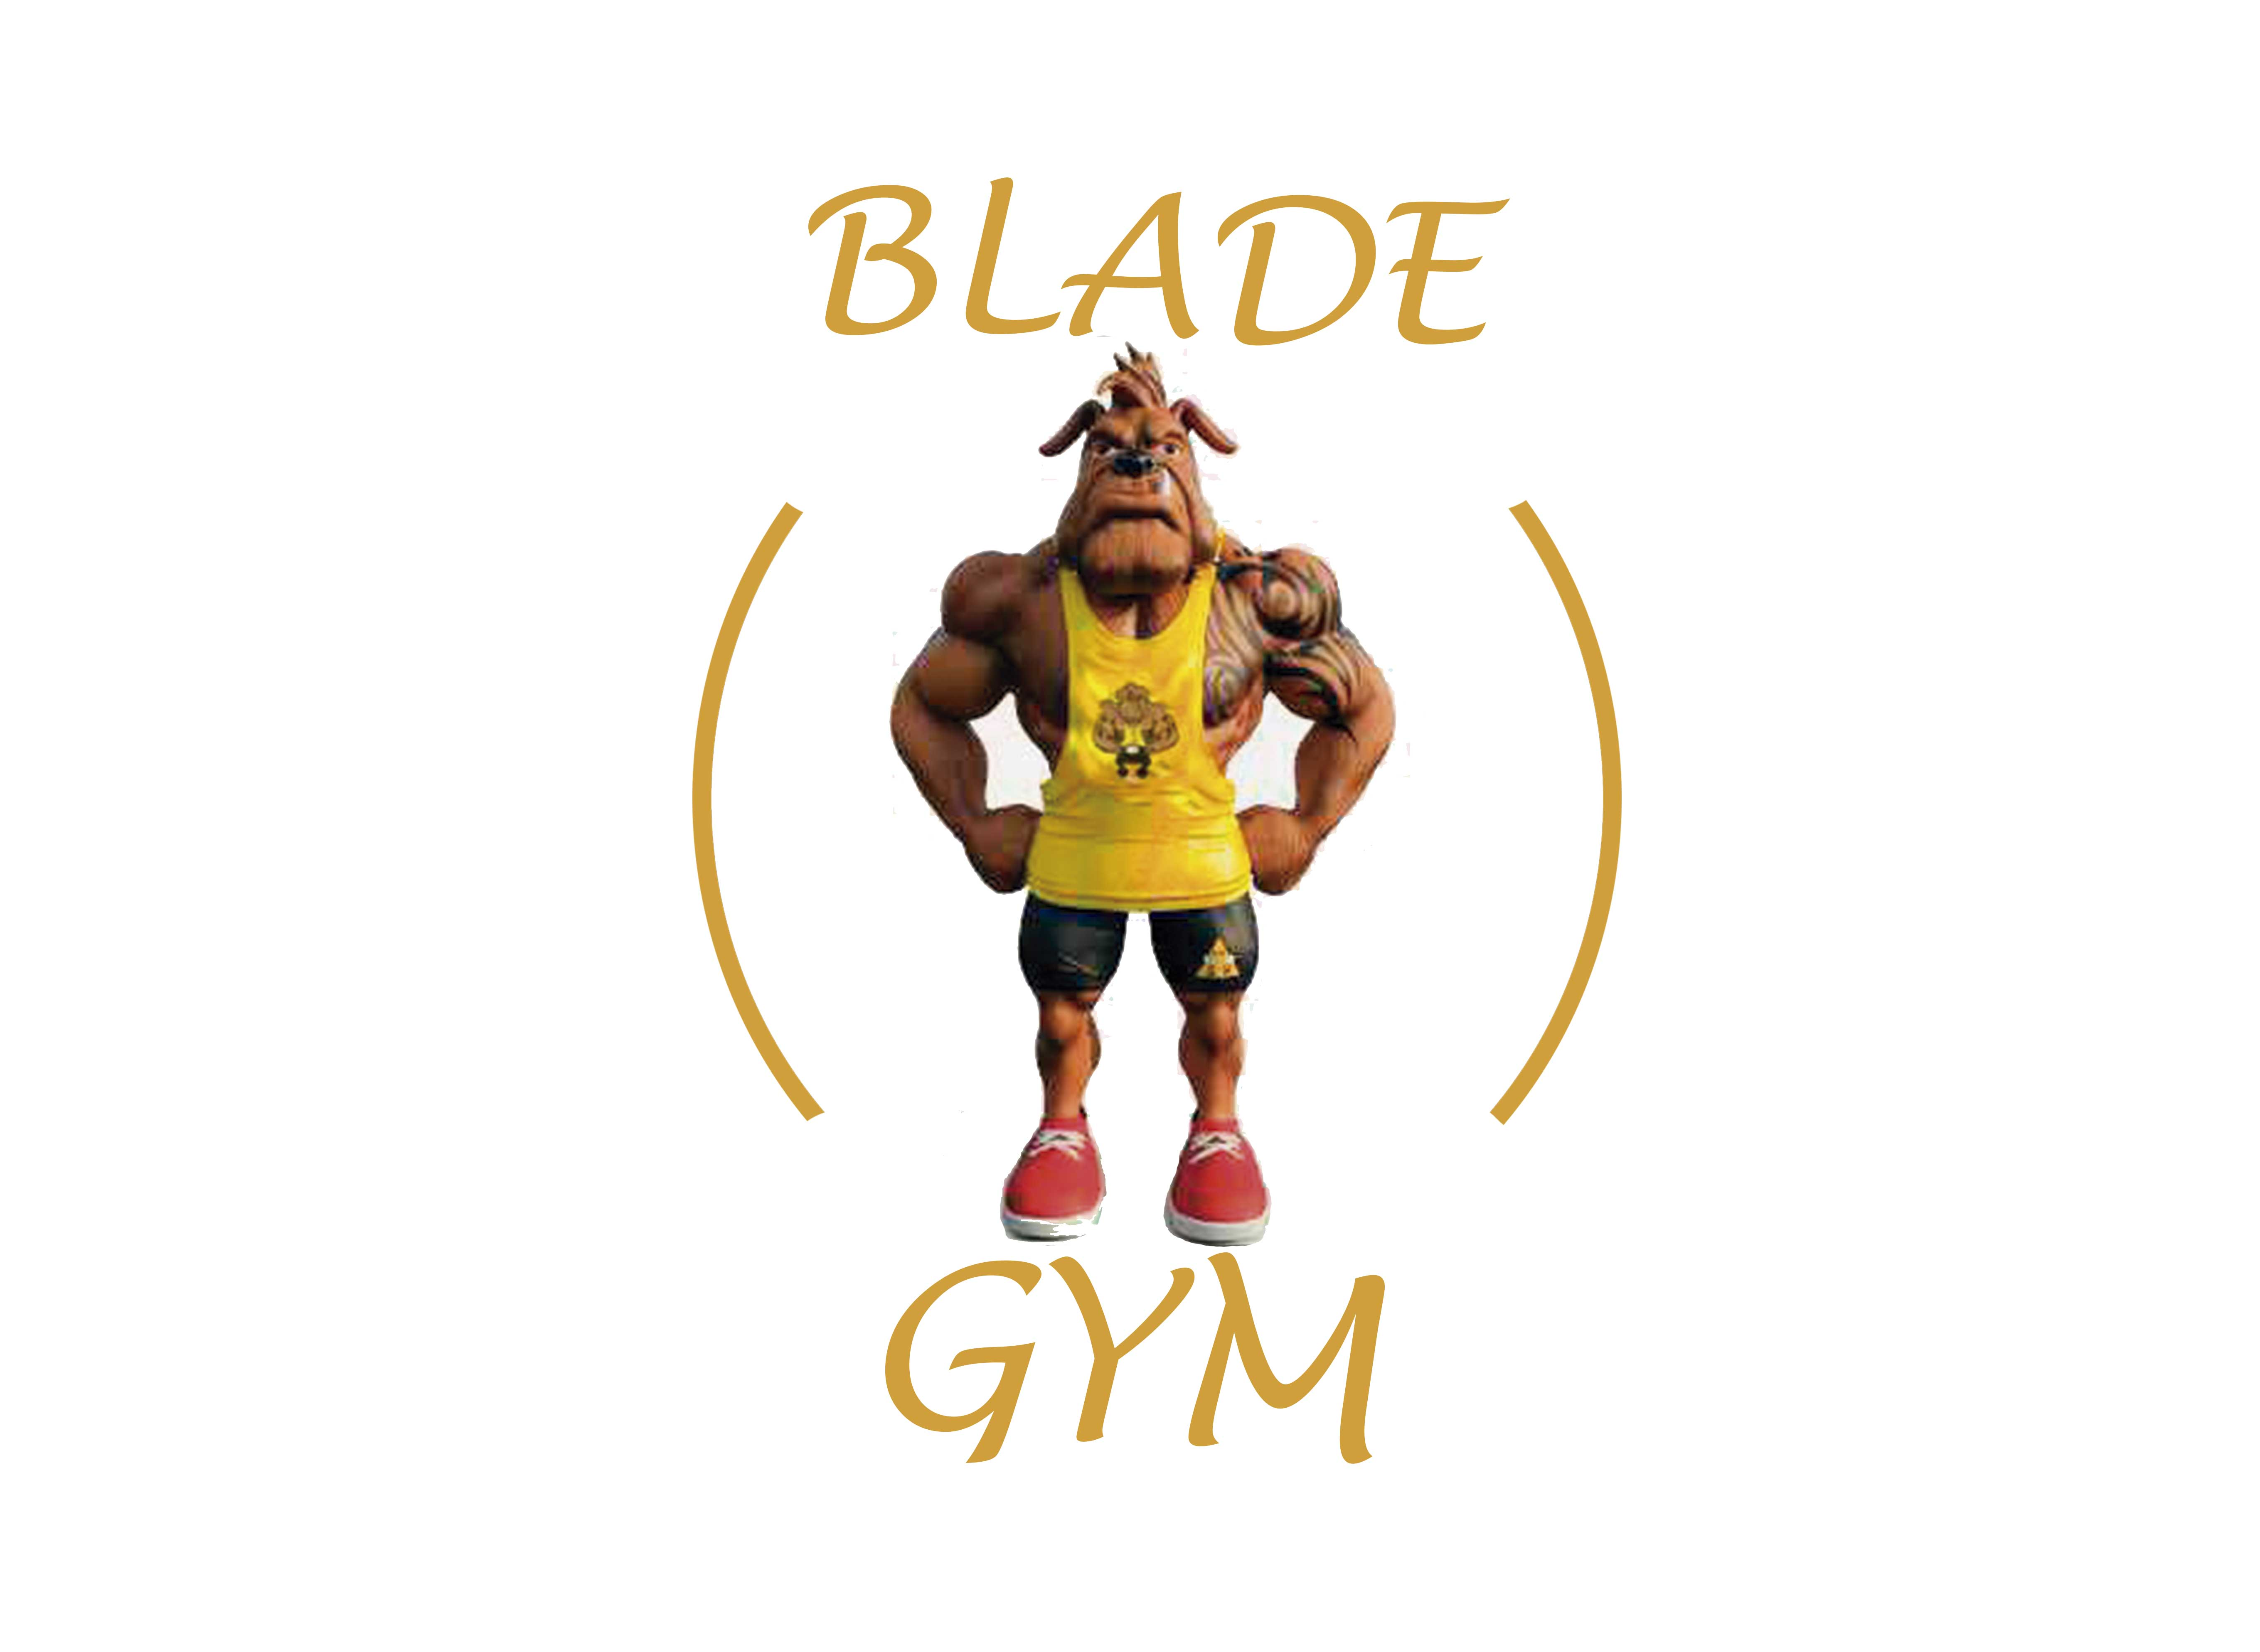 blade-gym-drc-marketingdigital